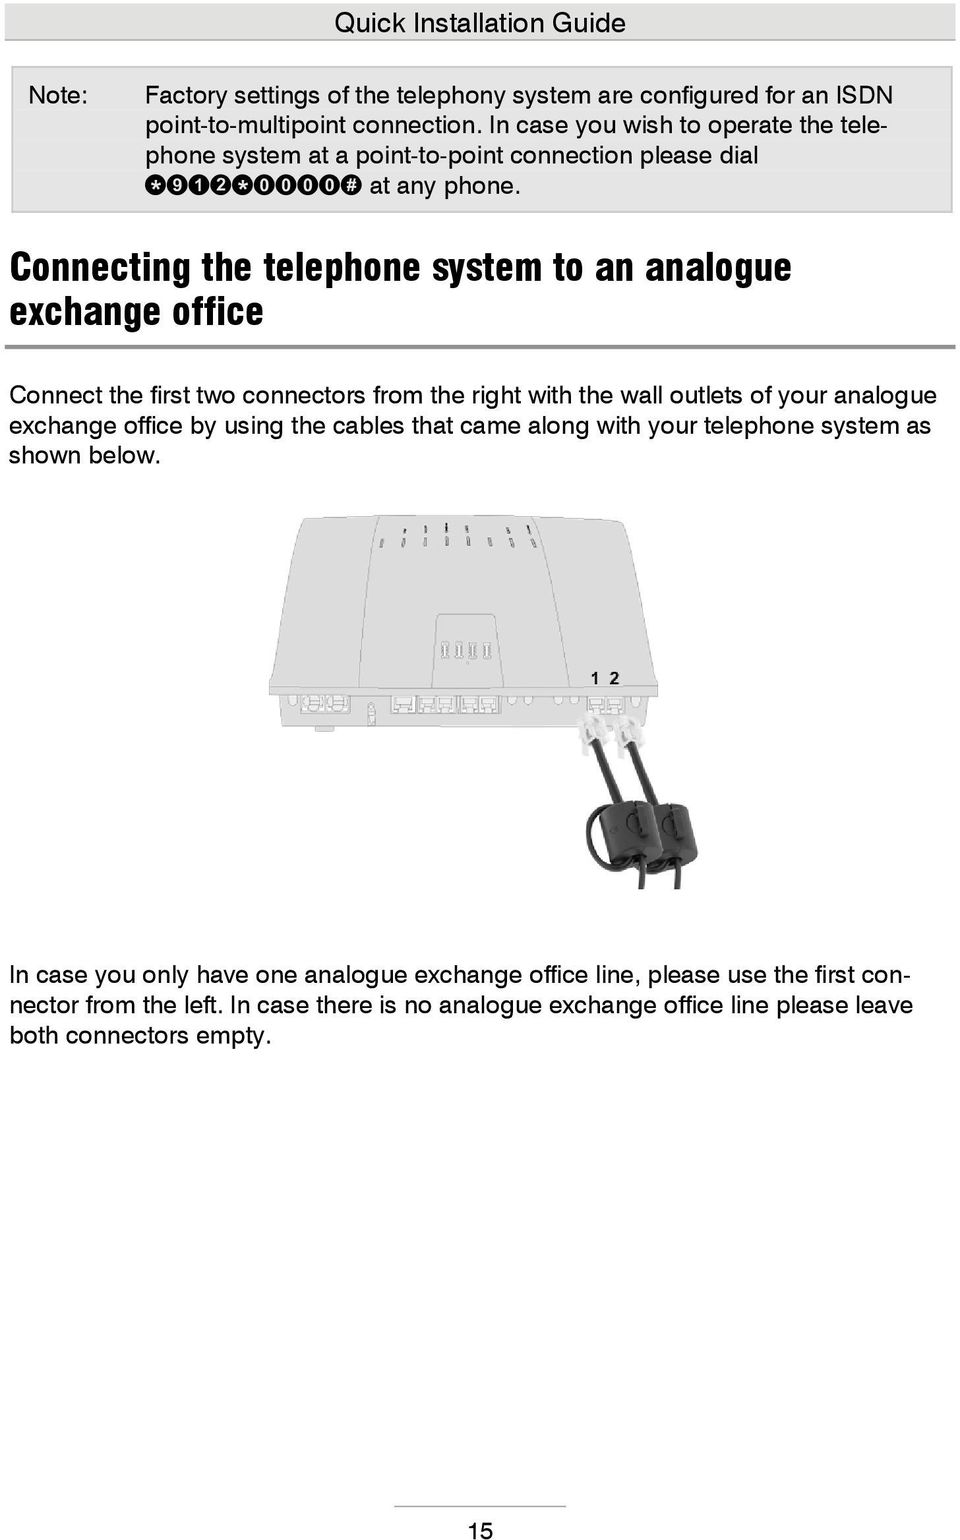 Connecting the telephone system to an analogue exchange office Connect the first two connectors from the right with the wall outlets of your analogue exchange office by